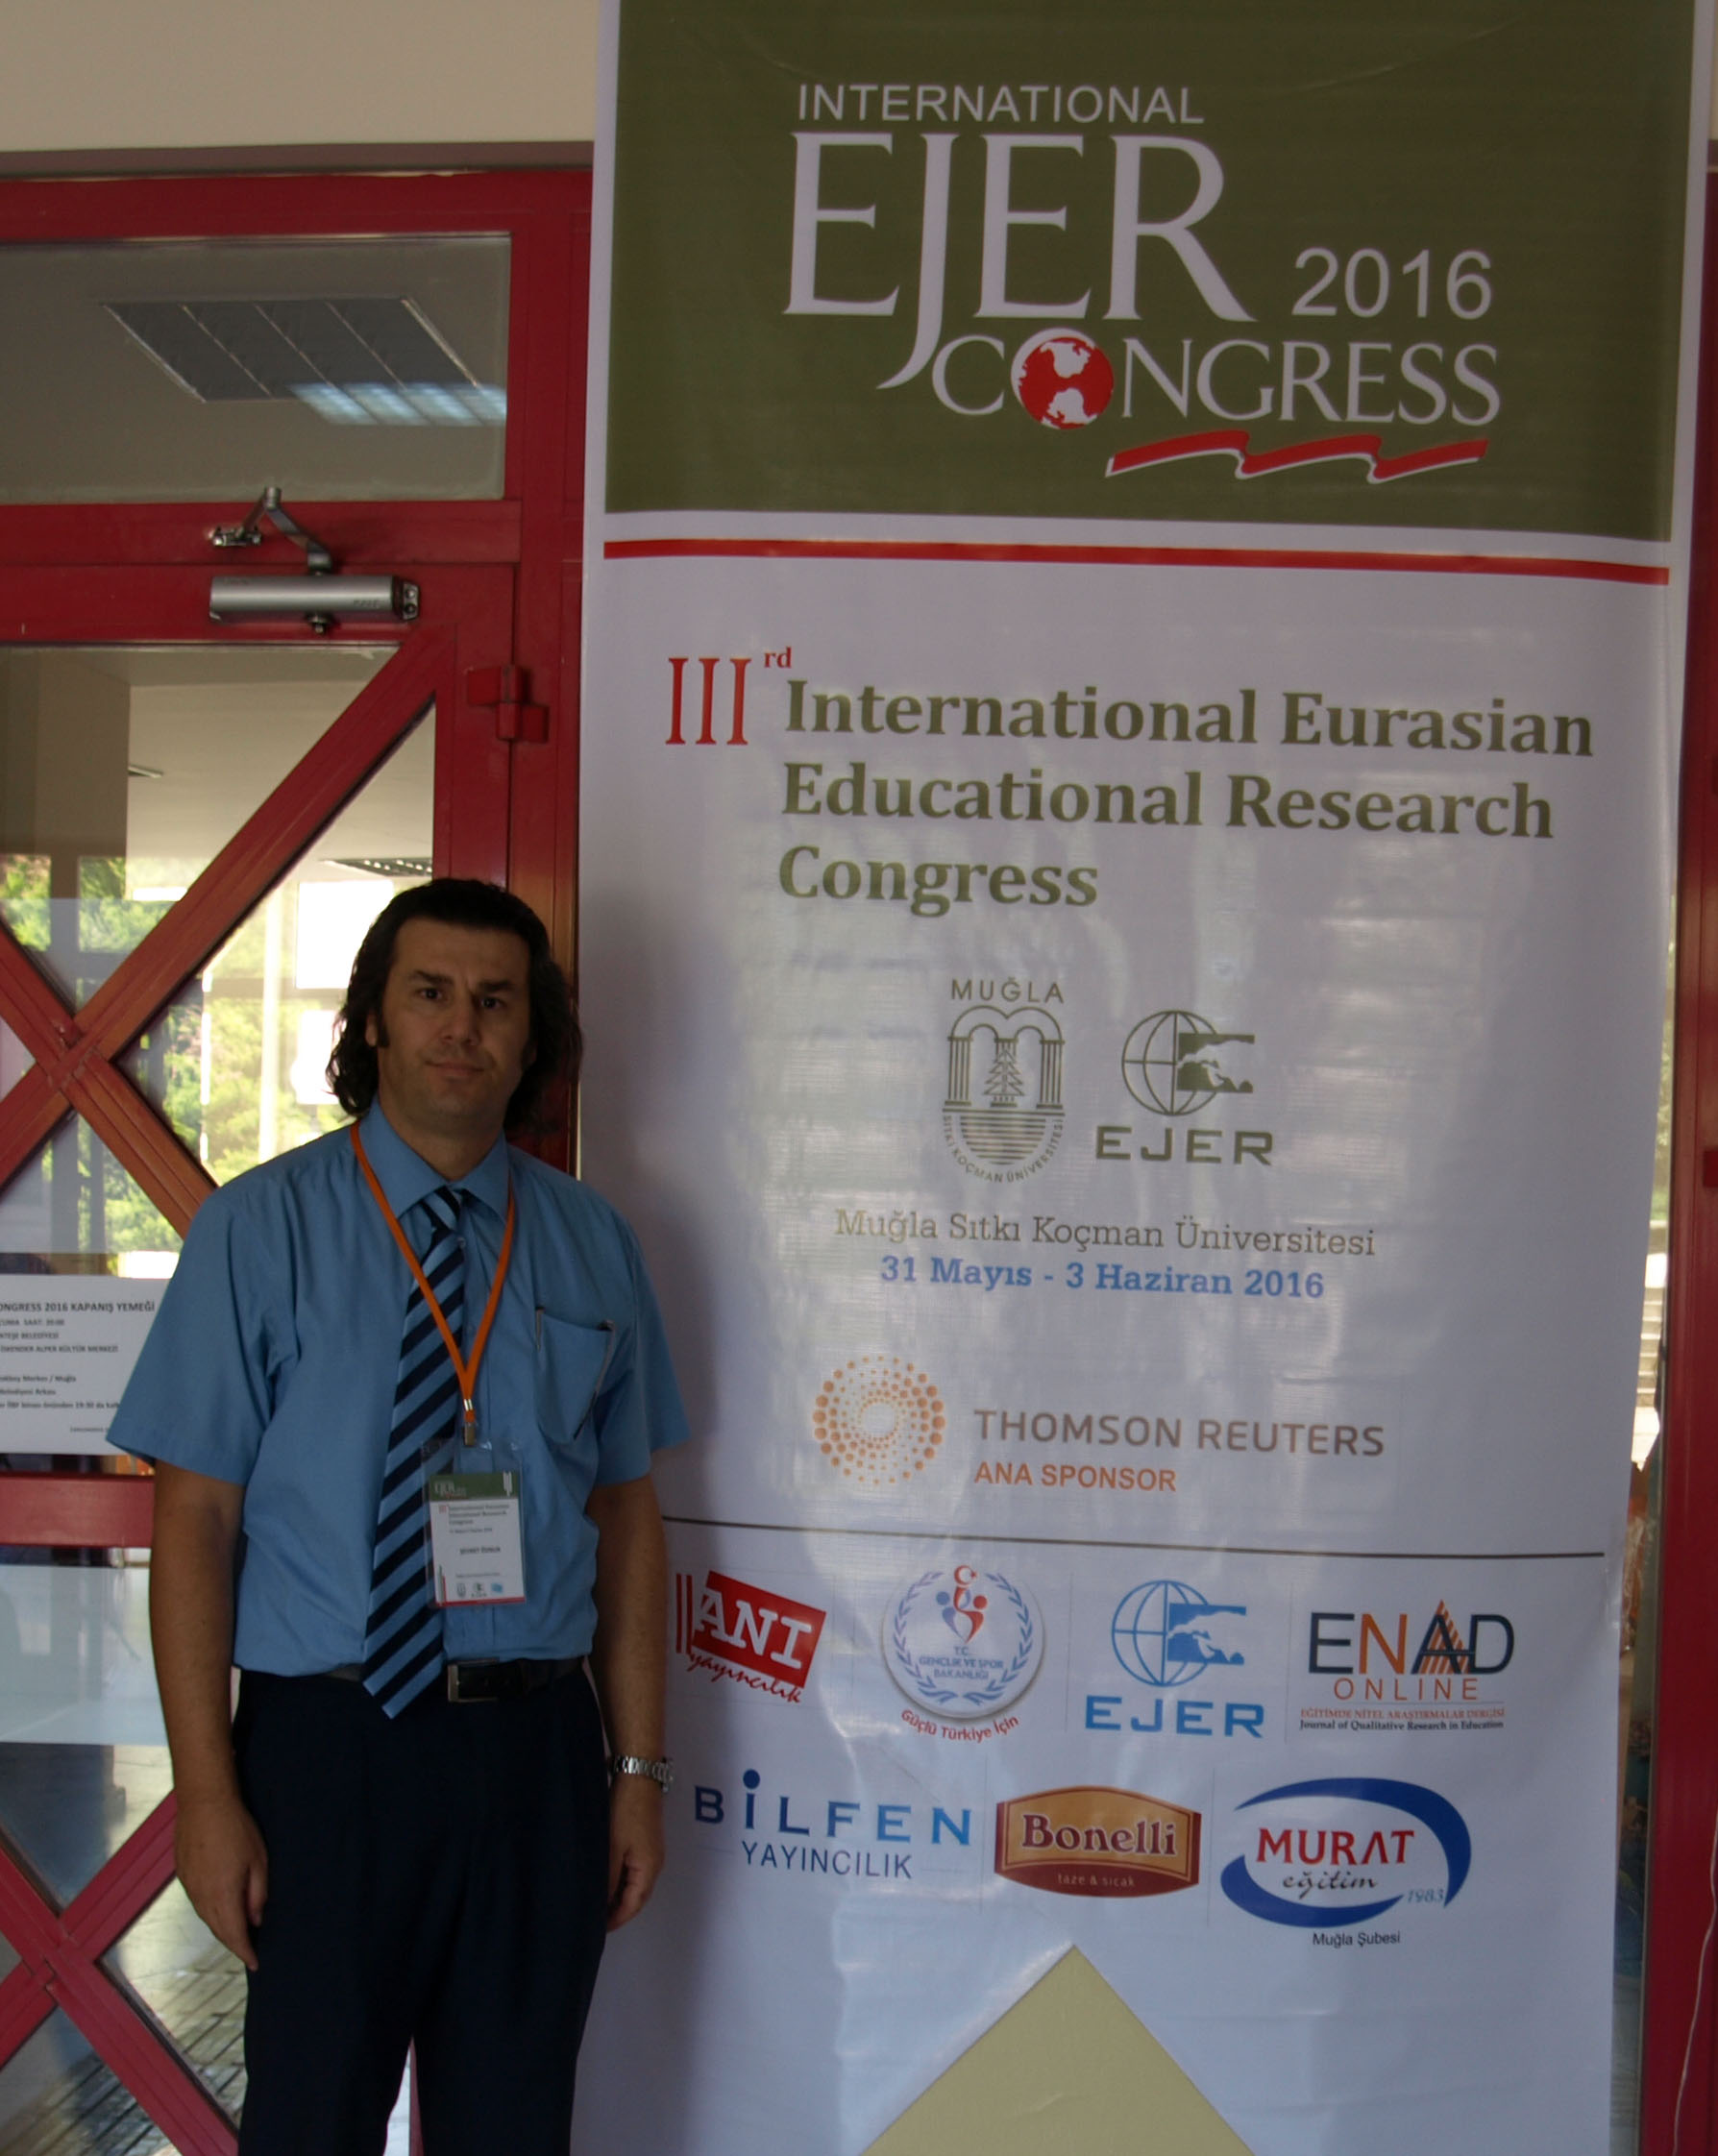 NEU has been represented at the EJER Congress 2016